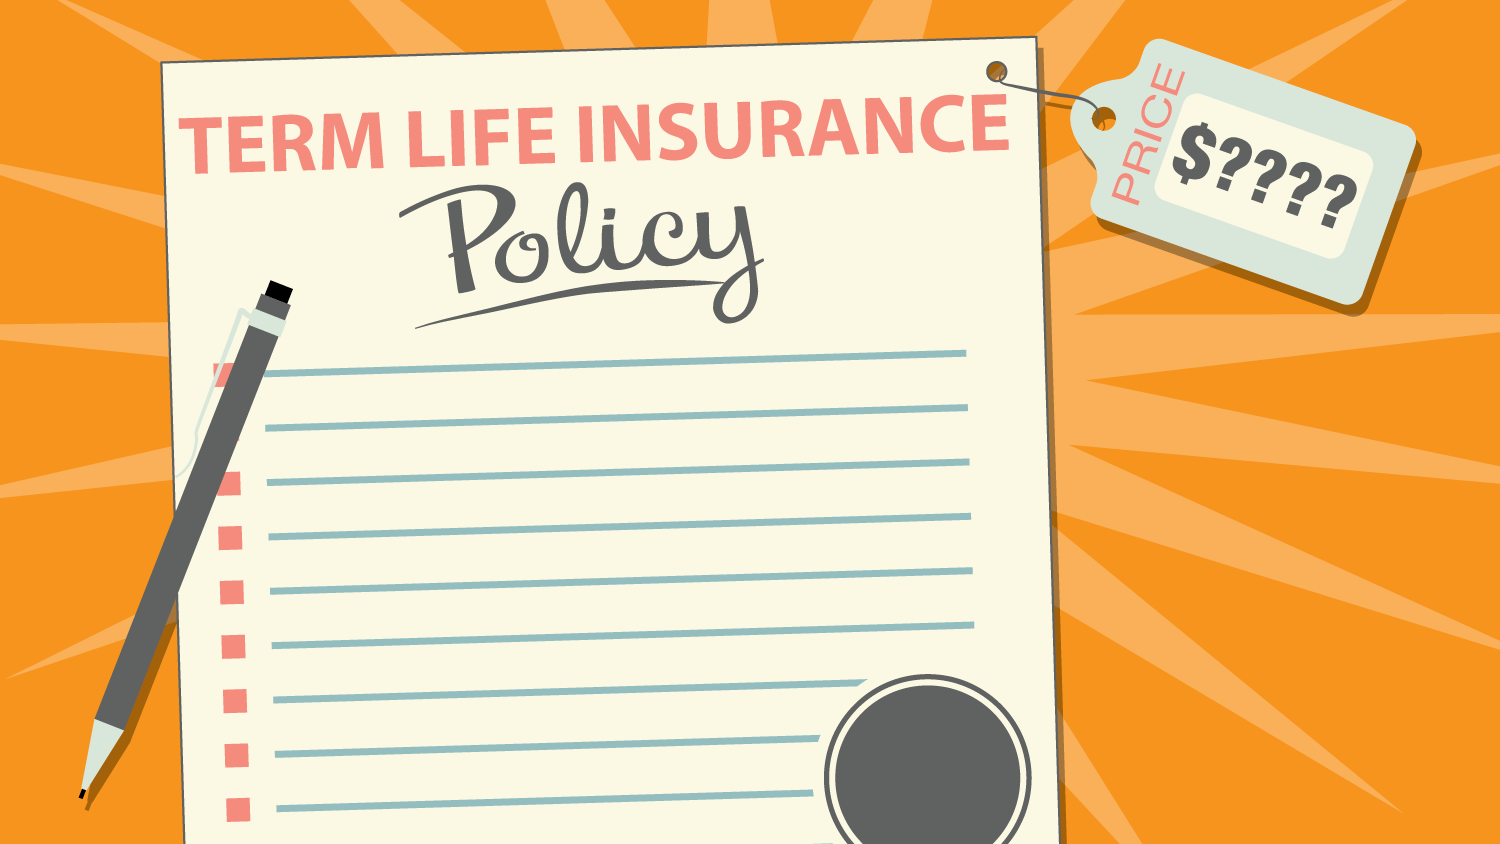 Level Term Life Insurance Quotes | QUOTES OF THE DAY